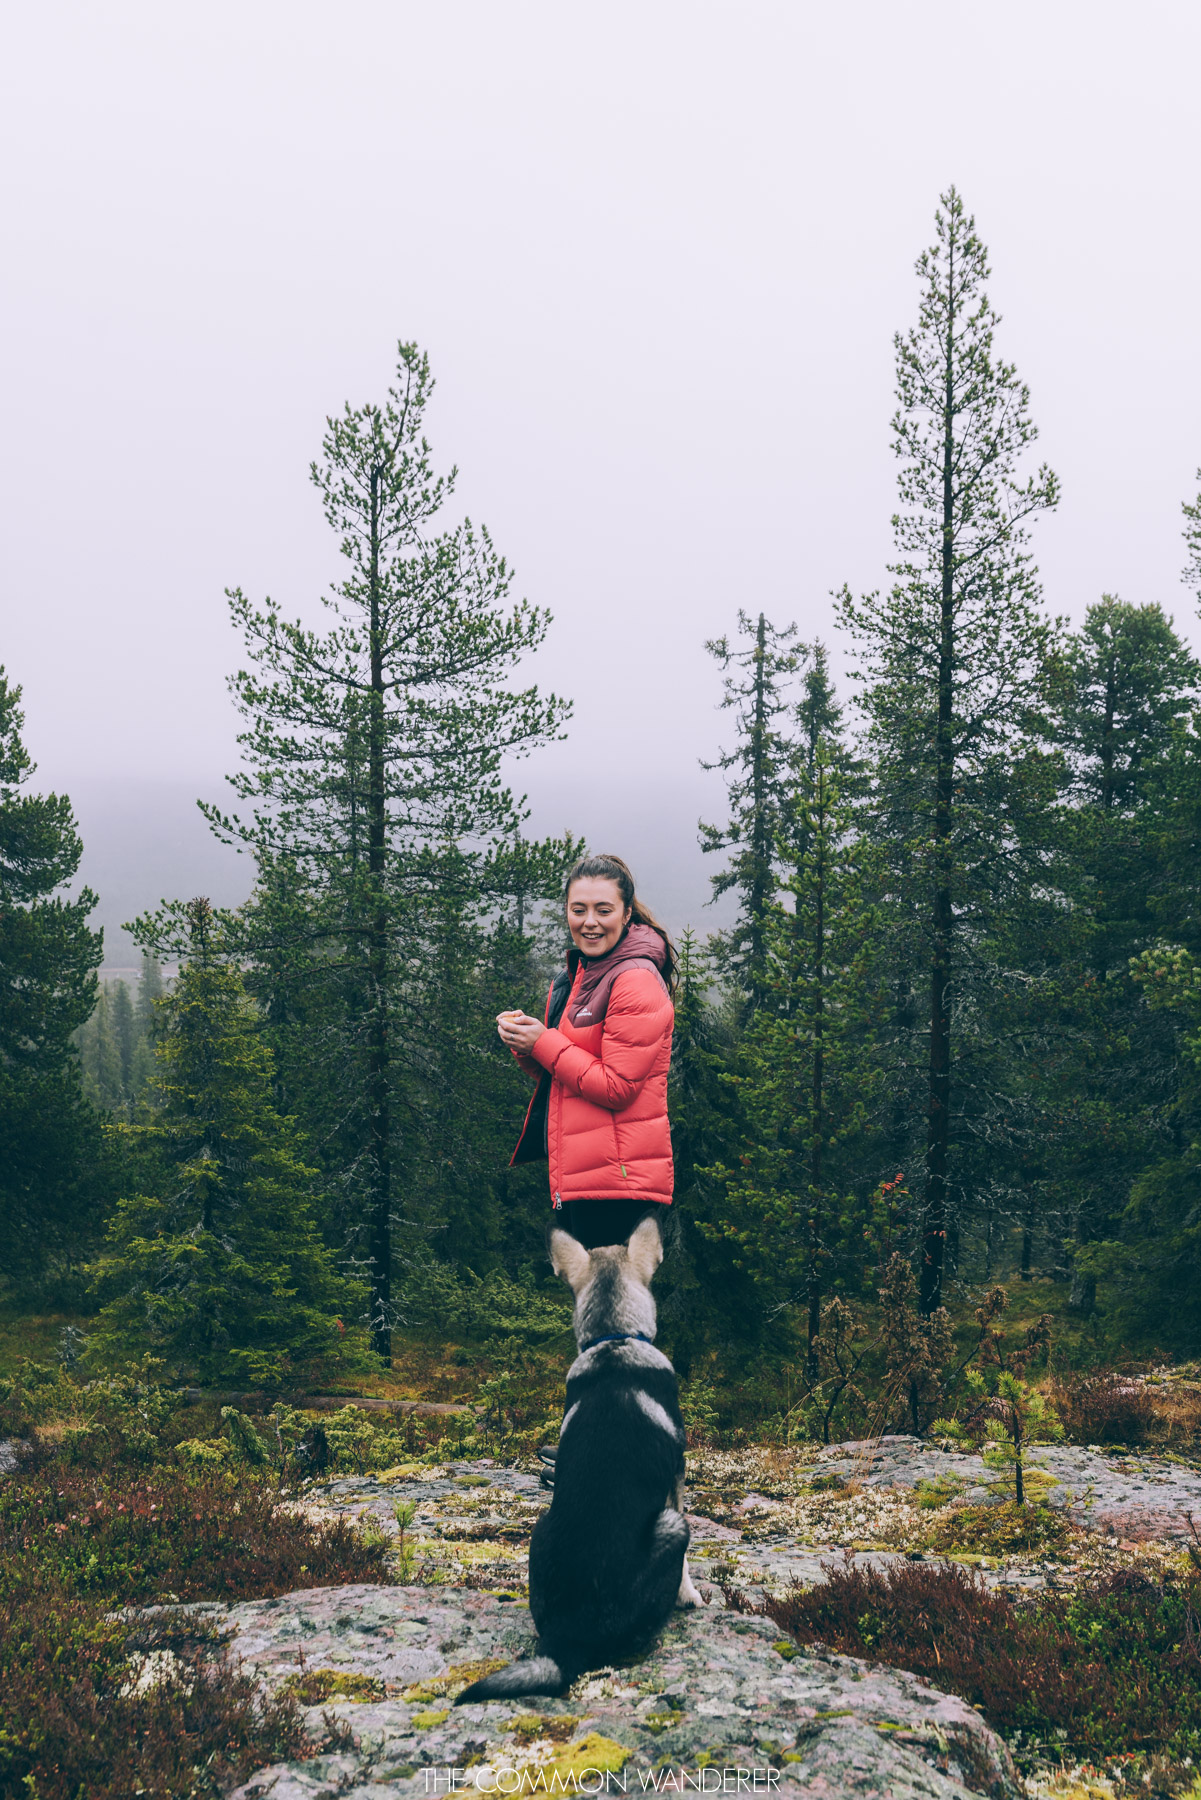 The Common Wanderer: Year in review - Swedish Lapland hiking with a dog